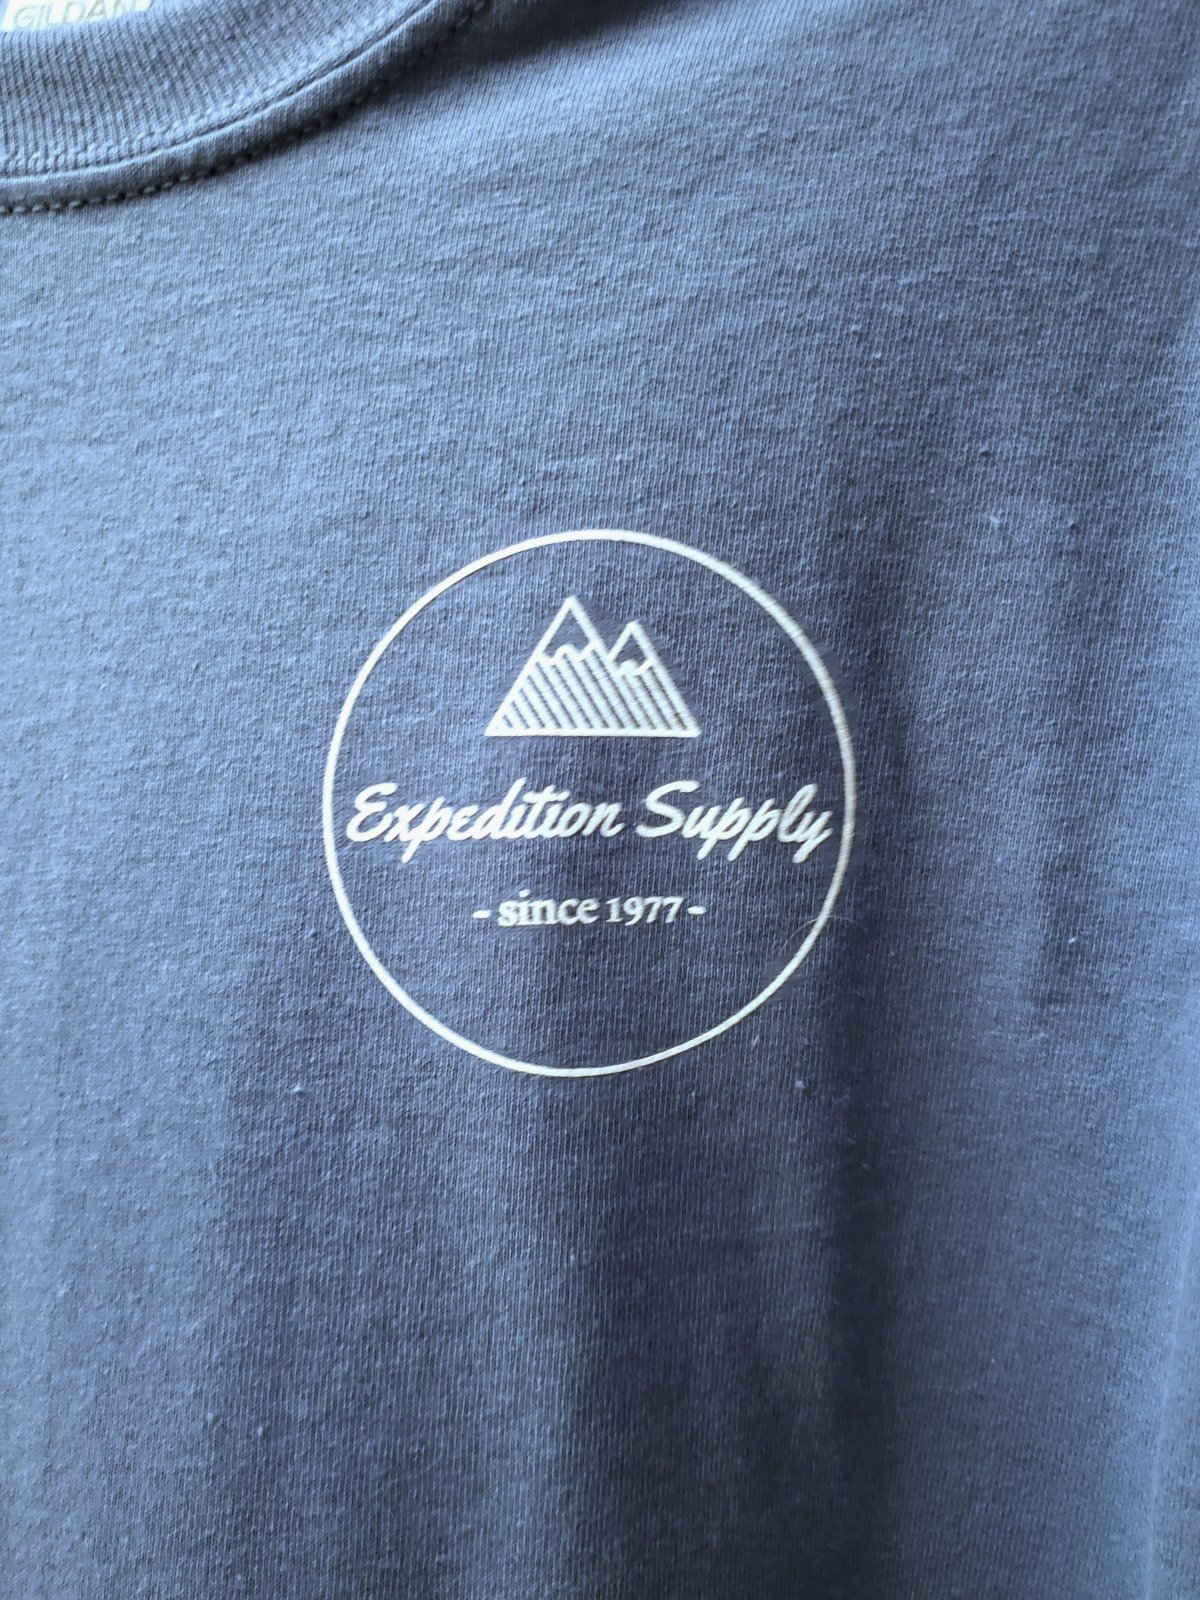 Expedition Supply LS tshirt